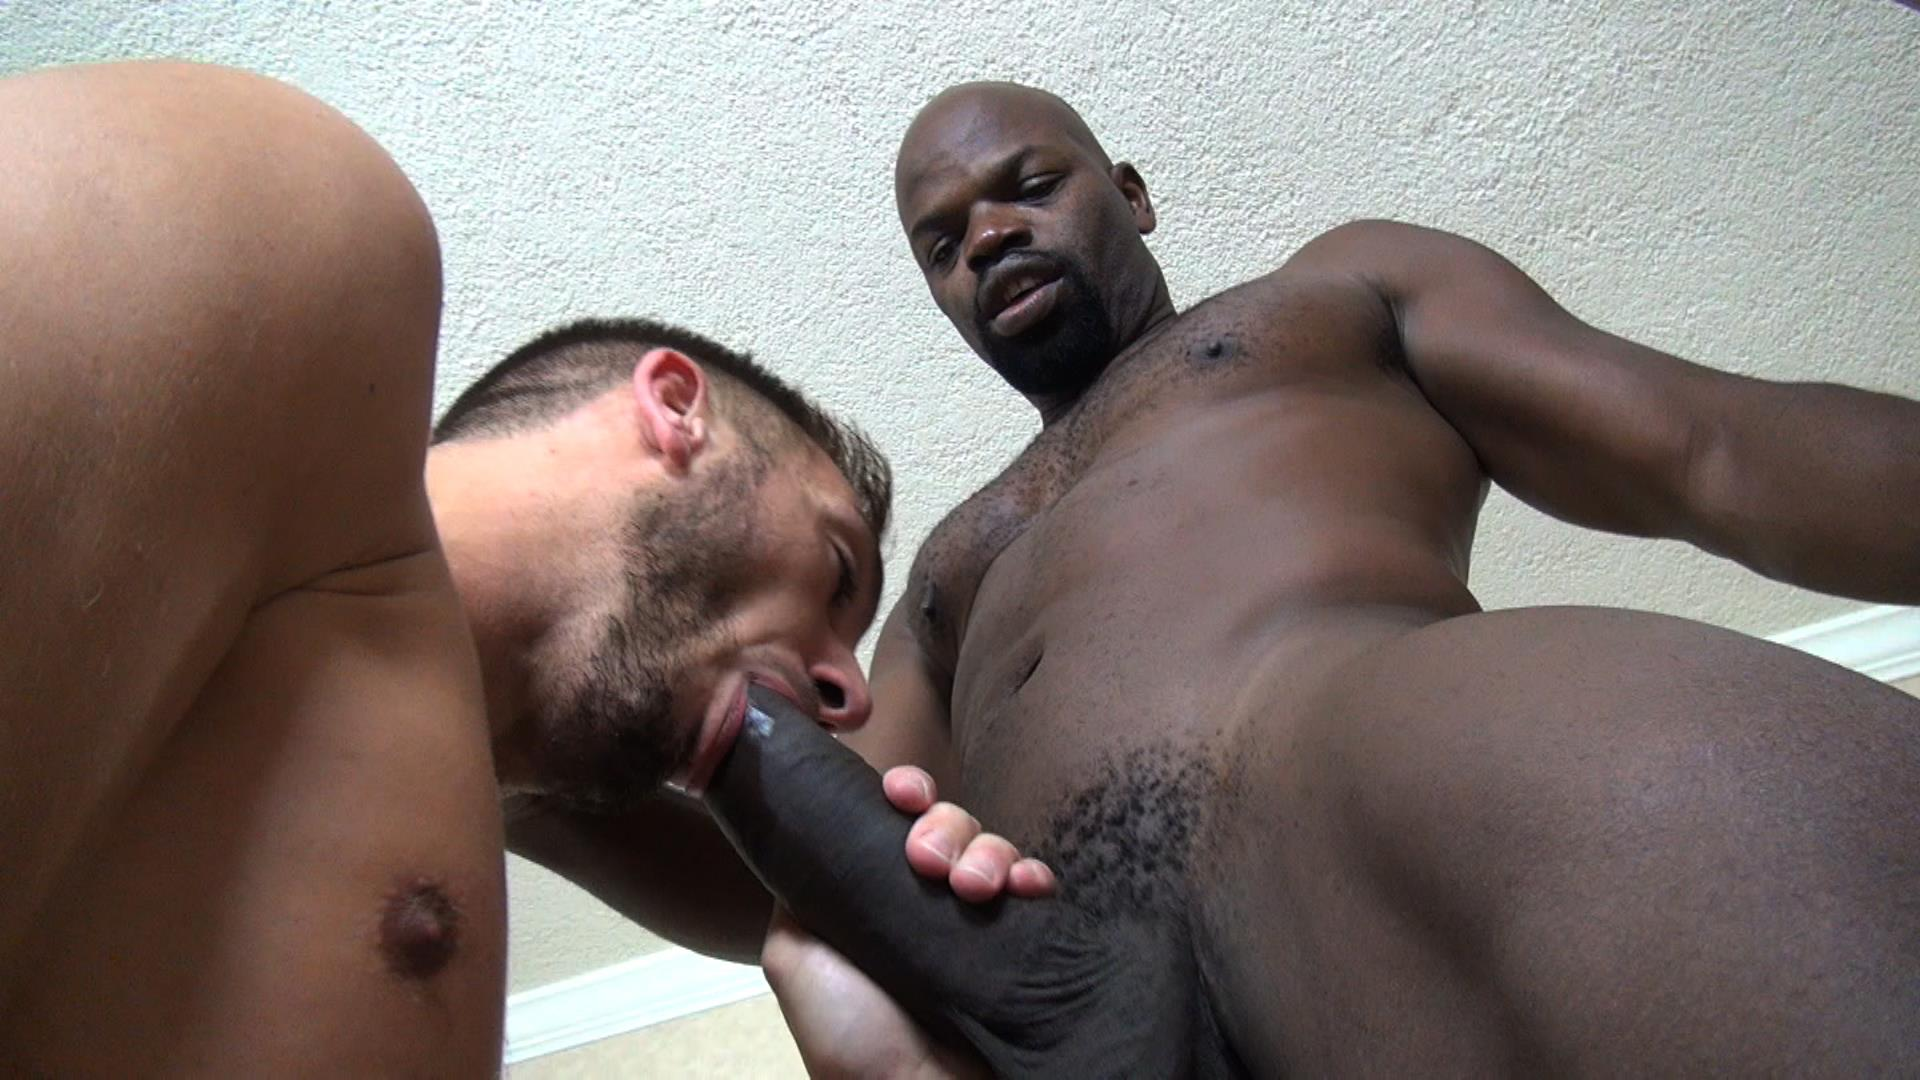 Hard and hairy gay